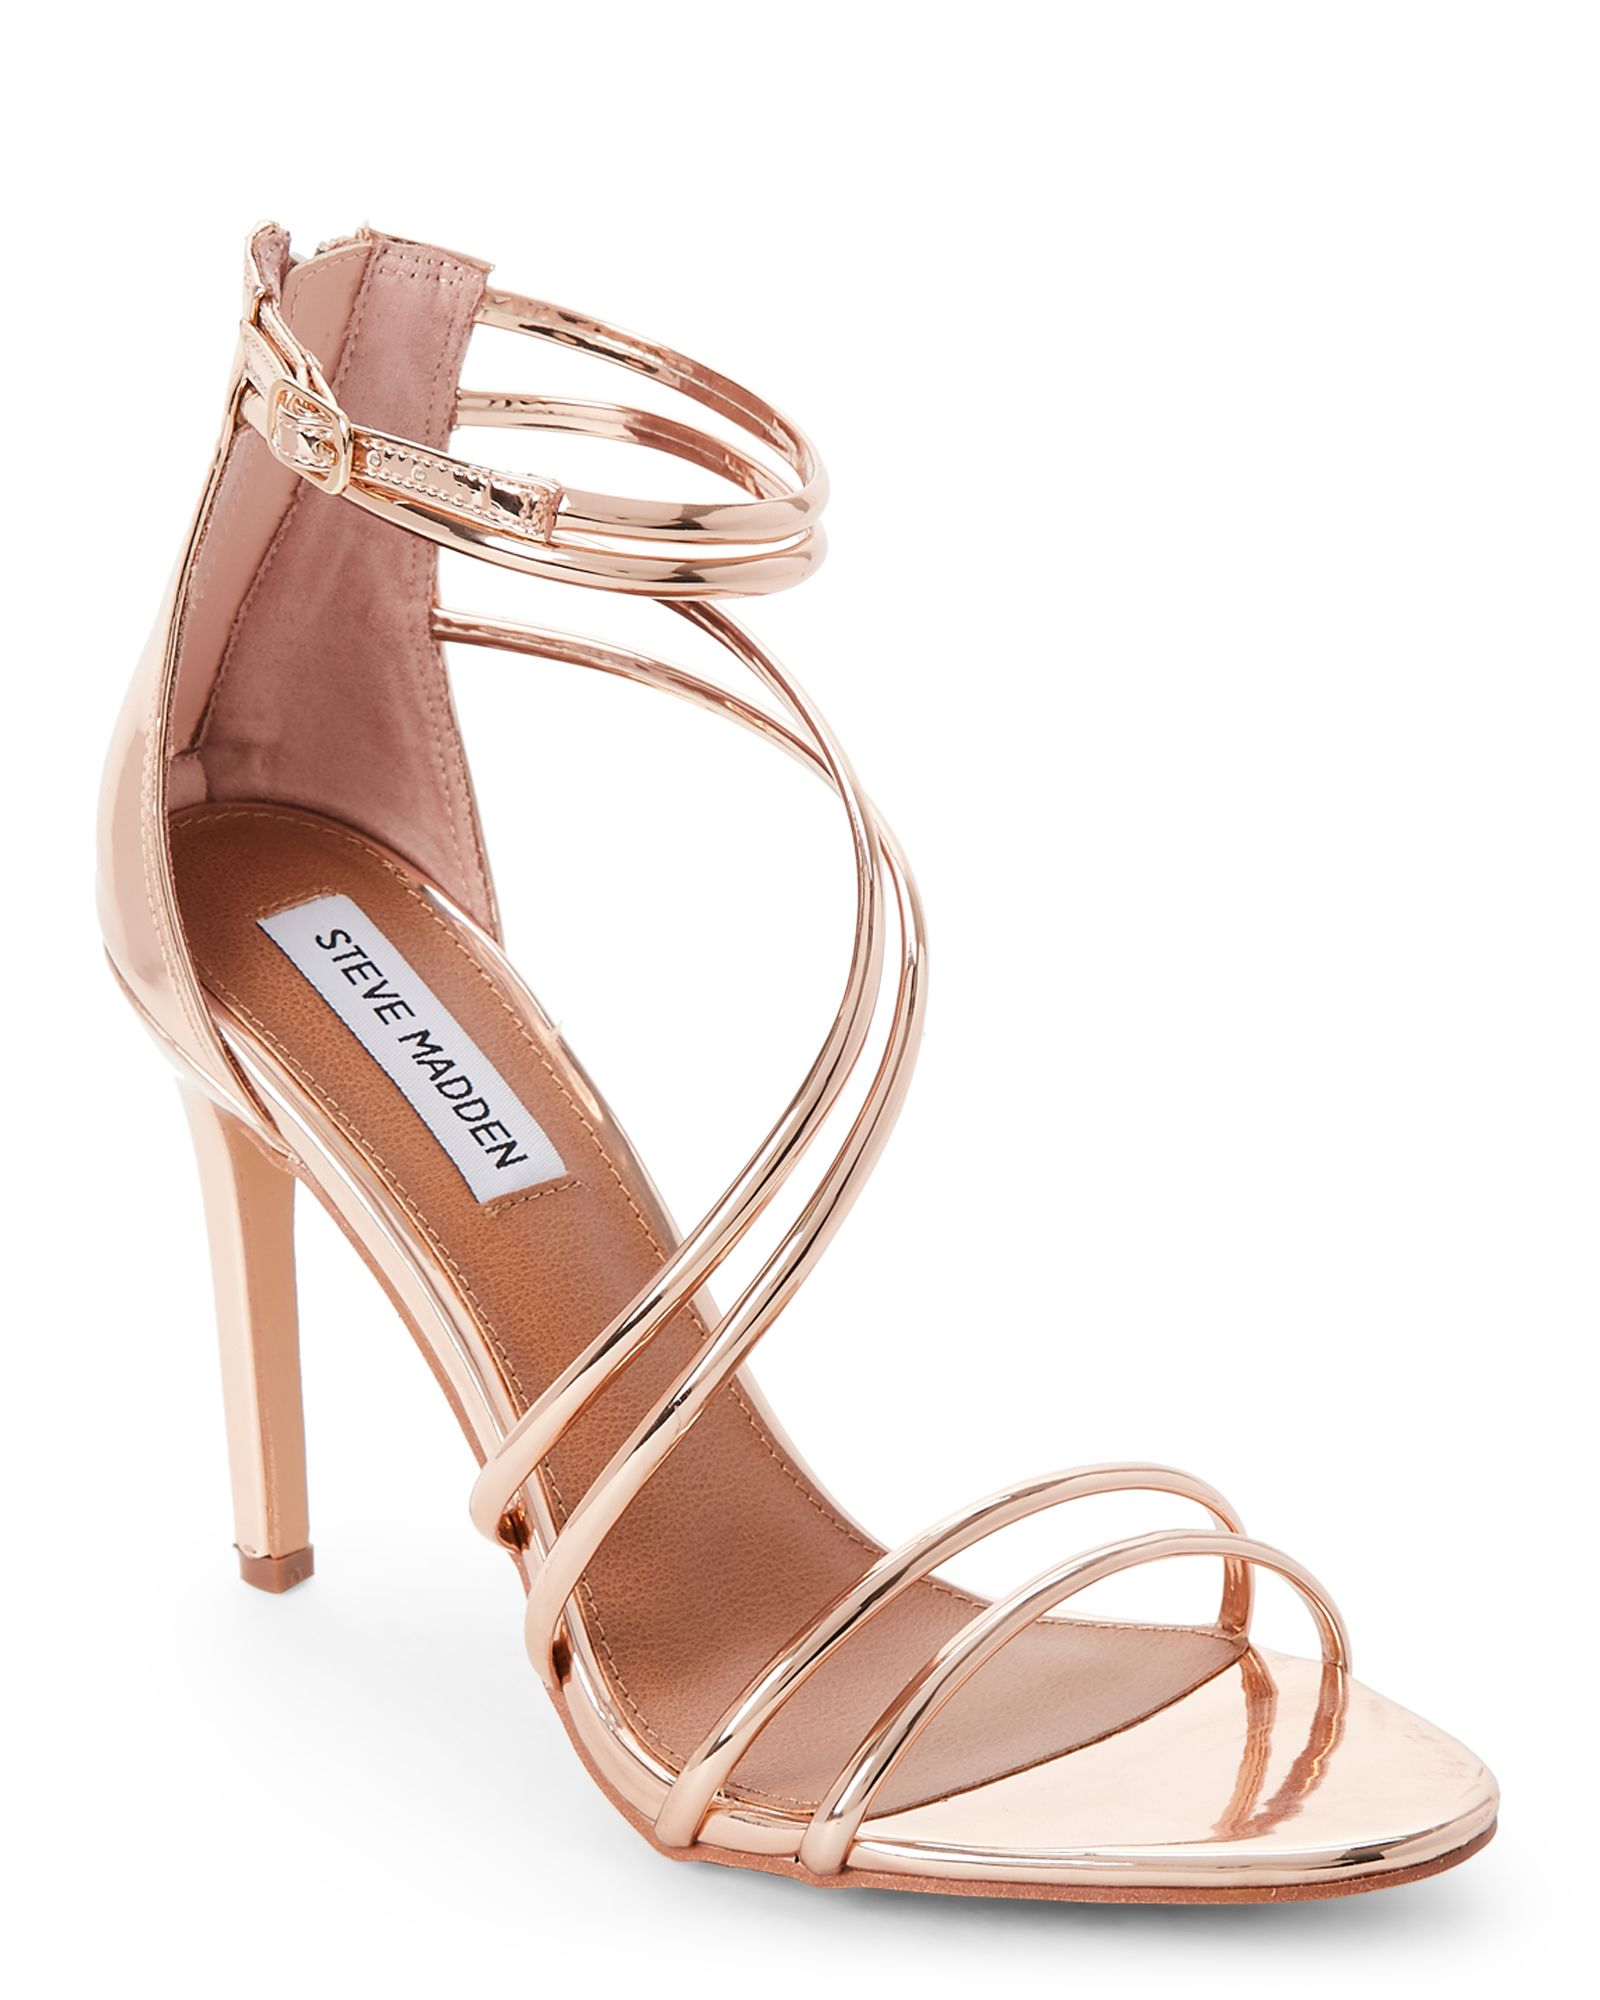 f27f05d3012 Fico Tube Strap High Heel Sandals in 2019 | *Apparel & Accessories ...